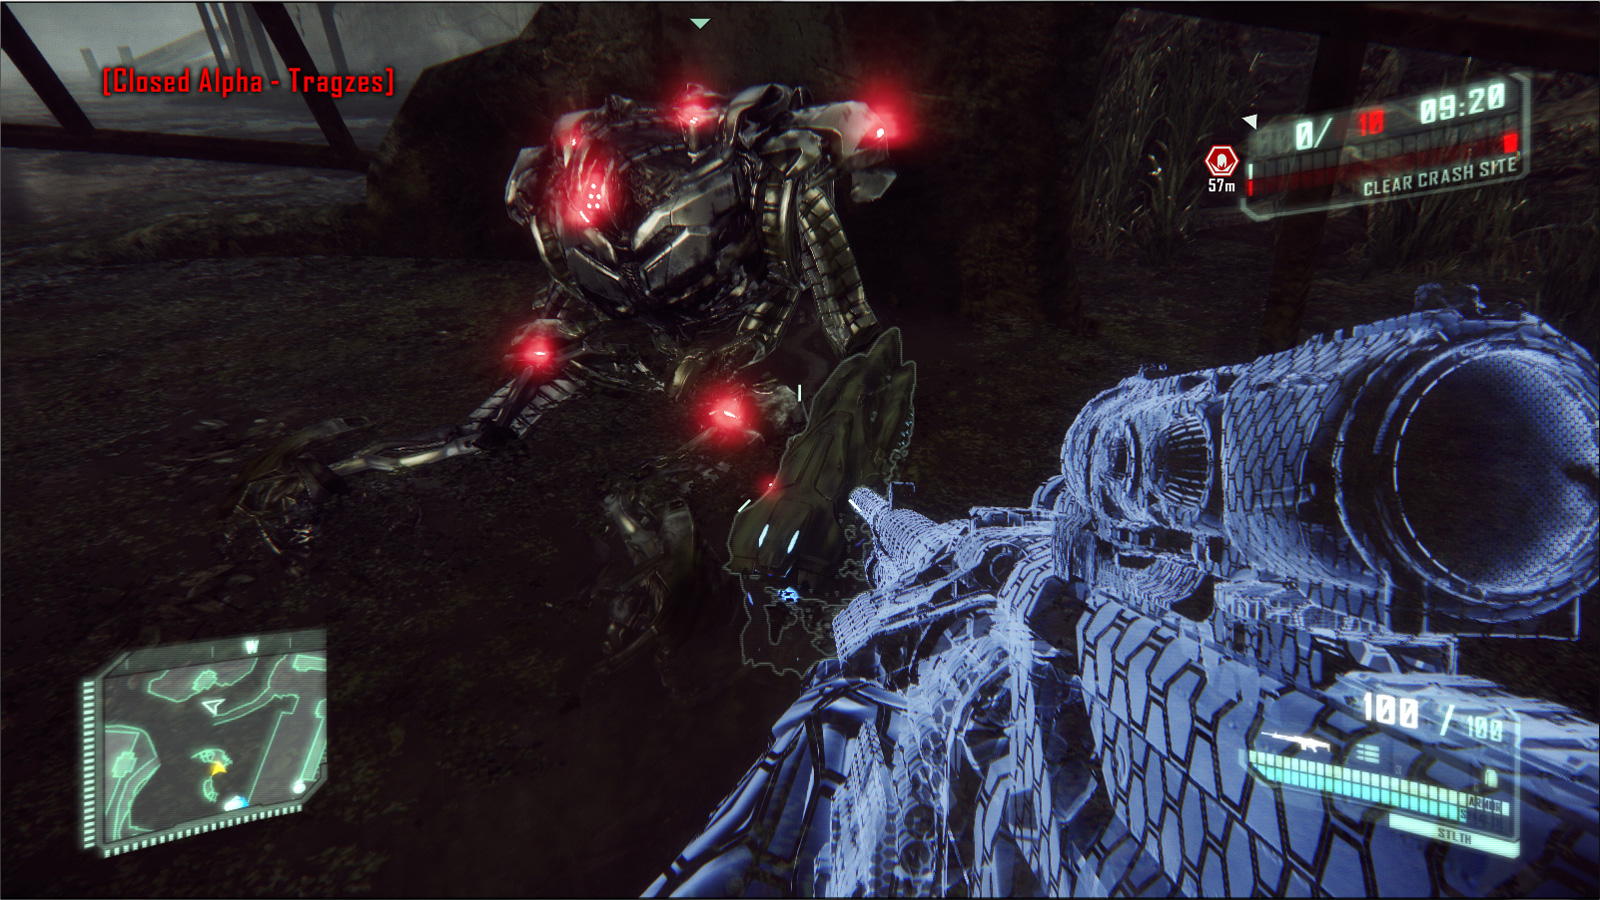 Index of /Crysis 3/Crashsite/lll